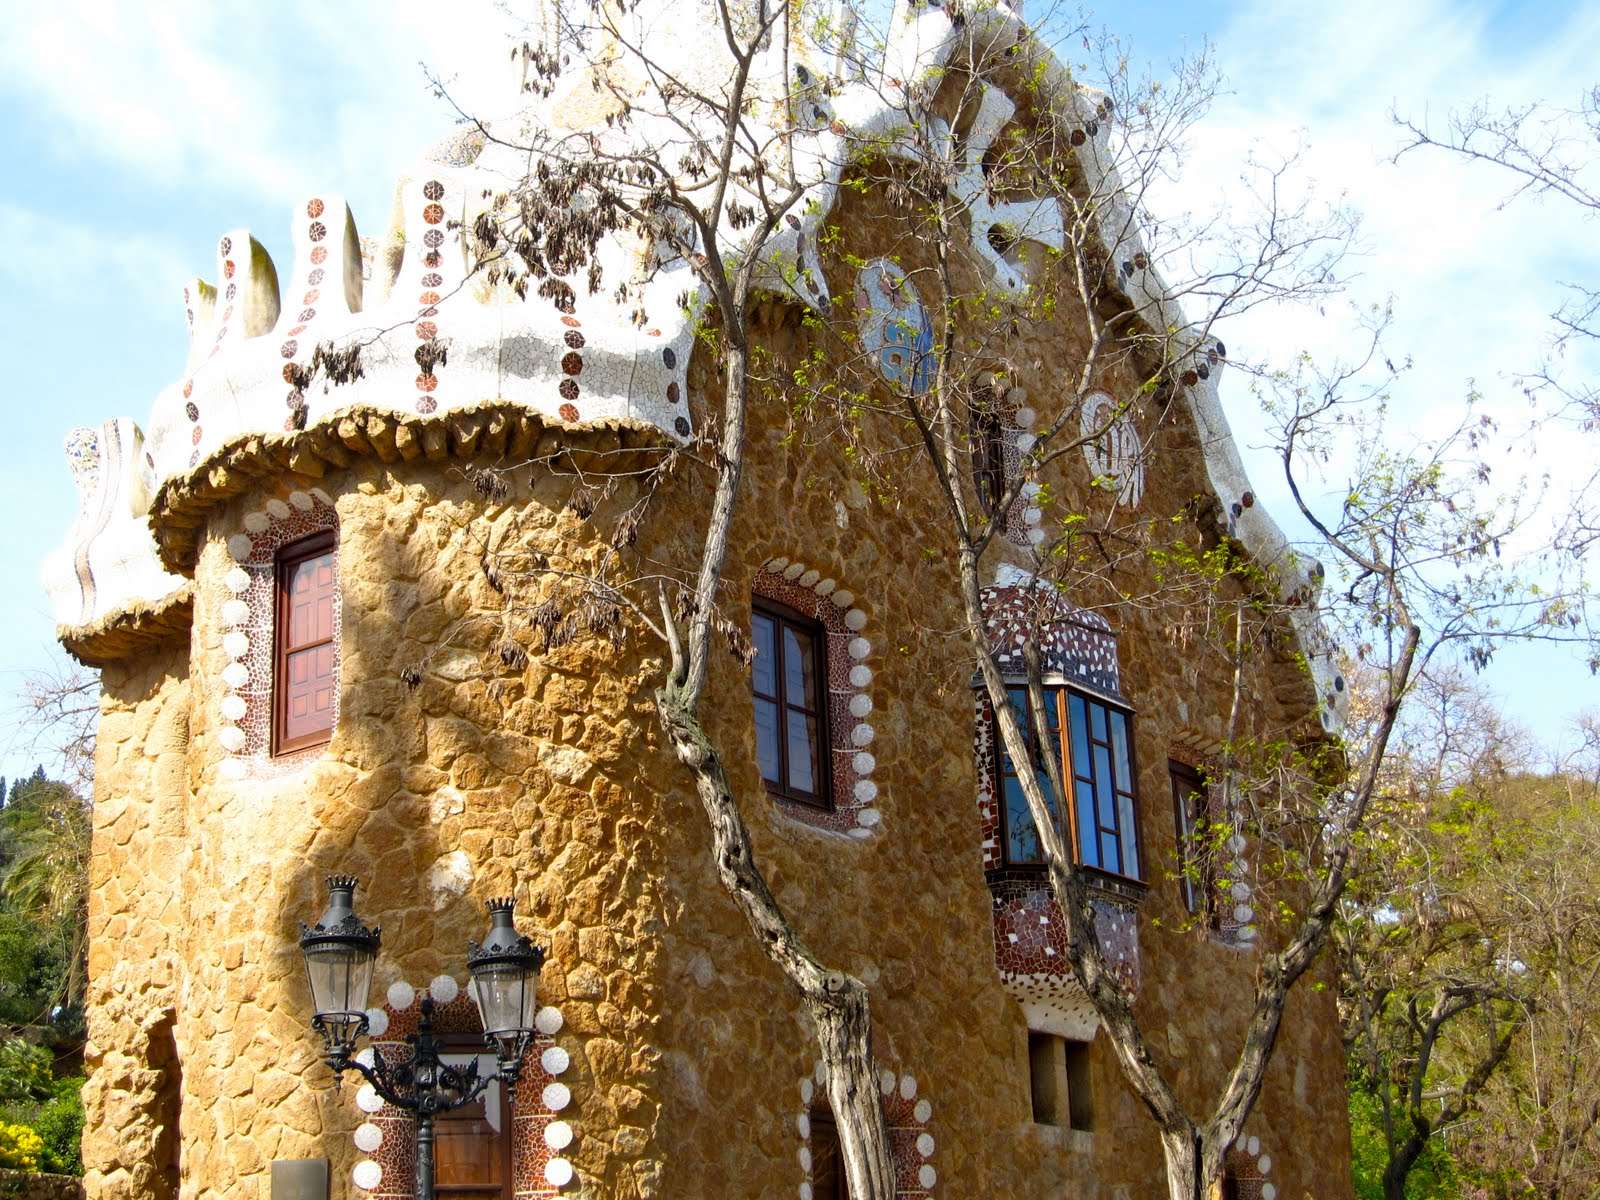 1000 images about gaudi architecture on pinterest gaudi for Architecture gaudi